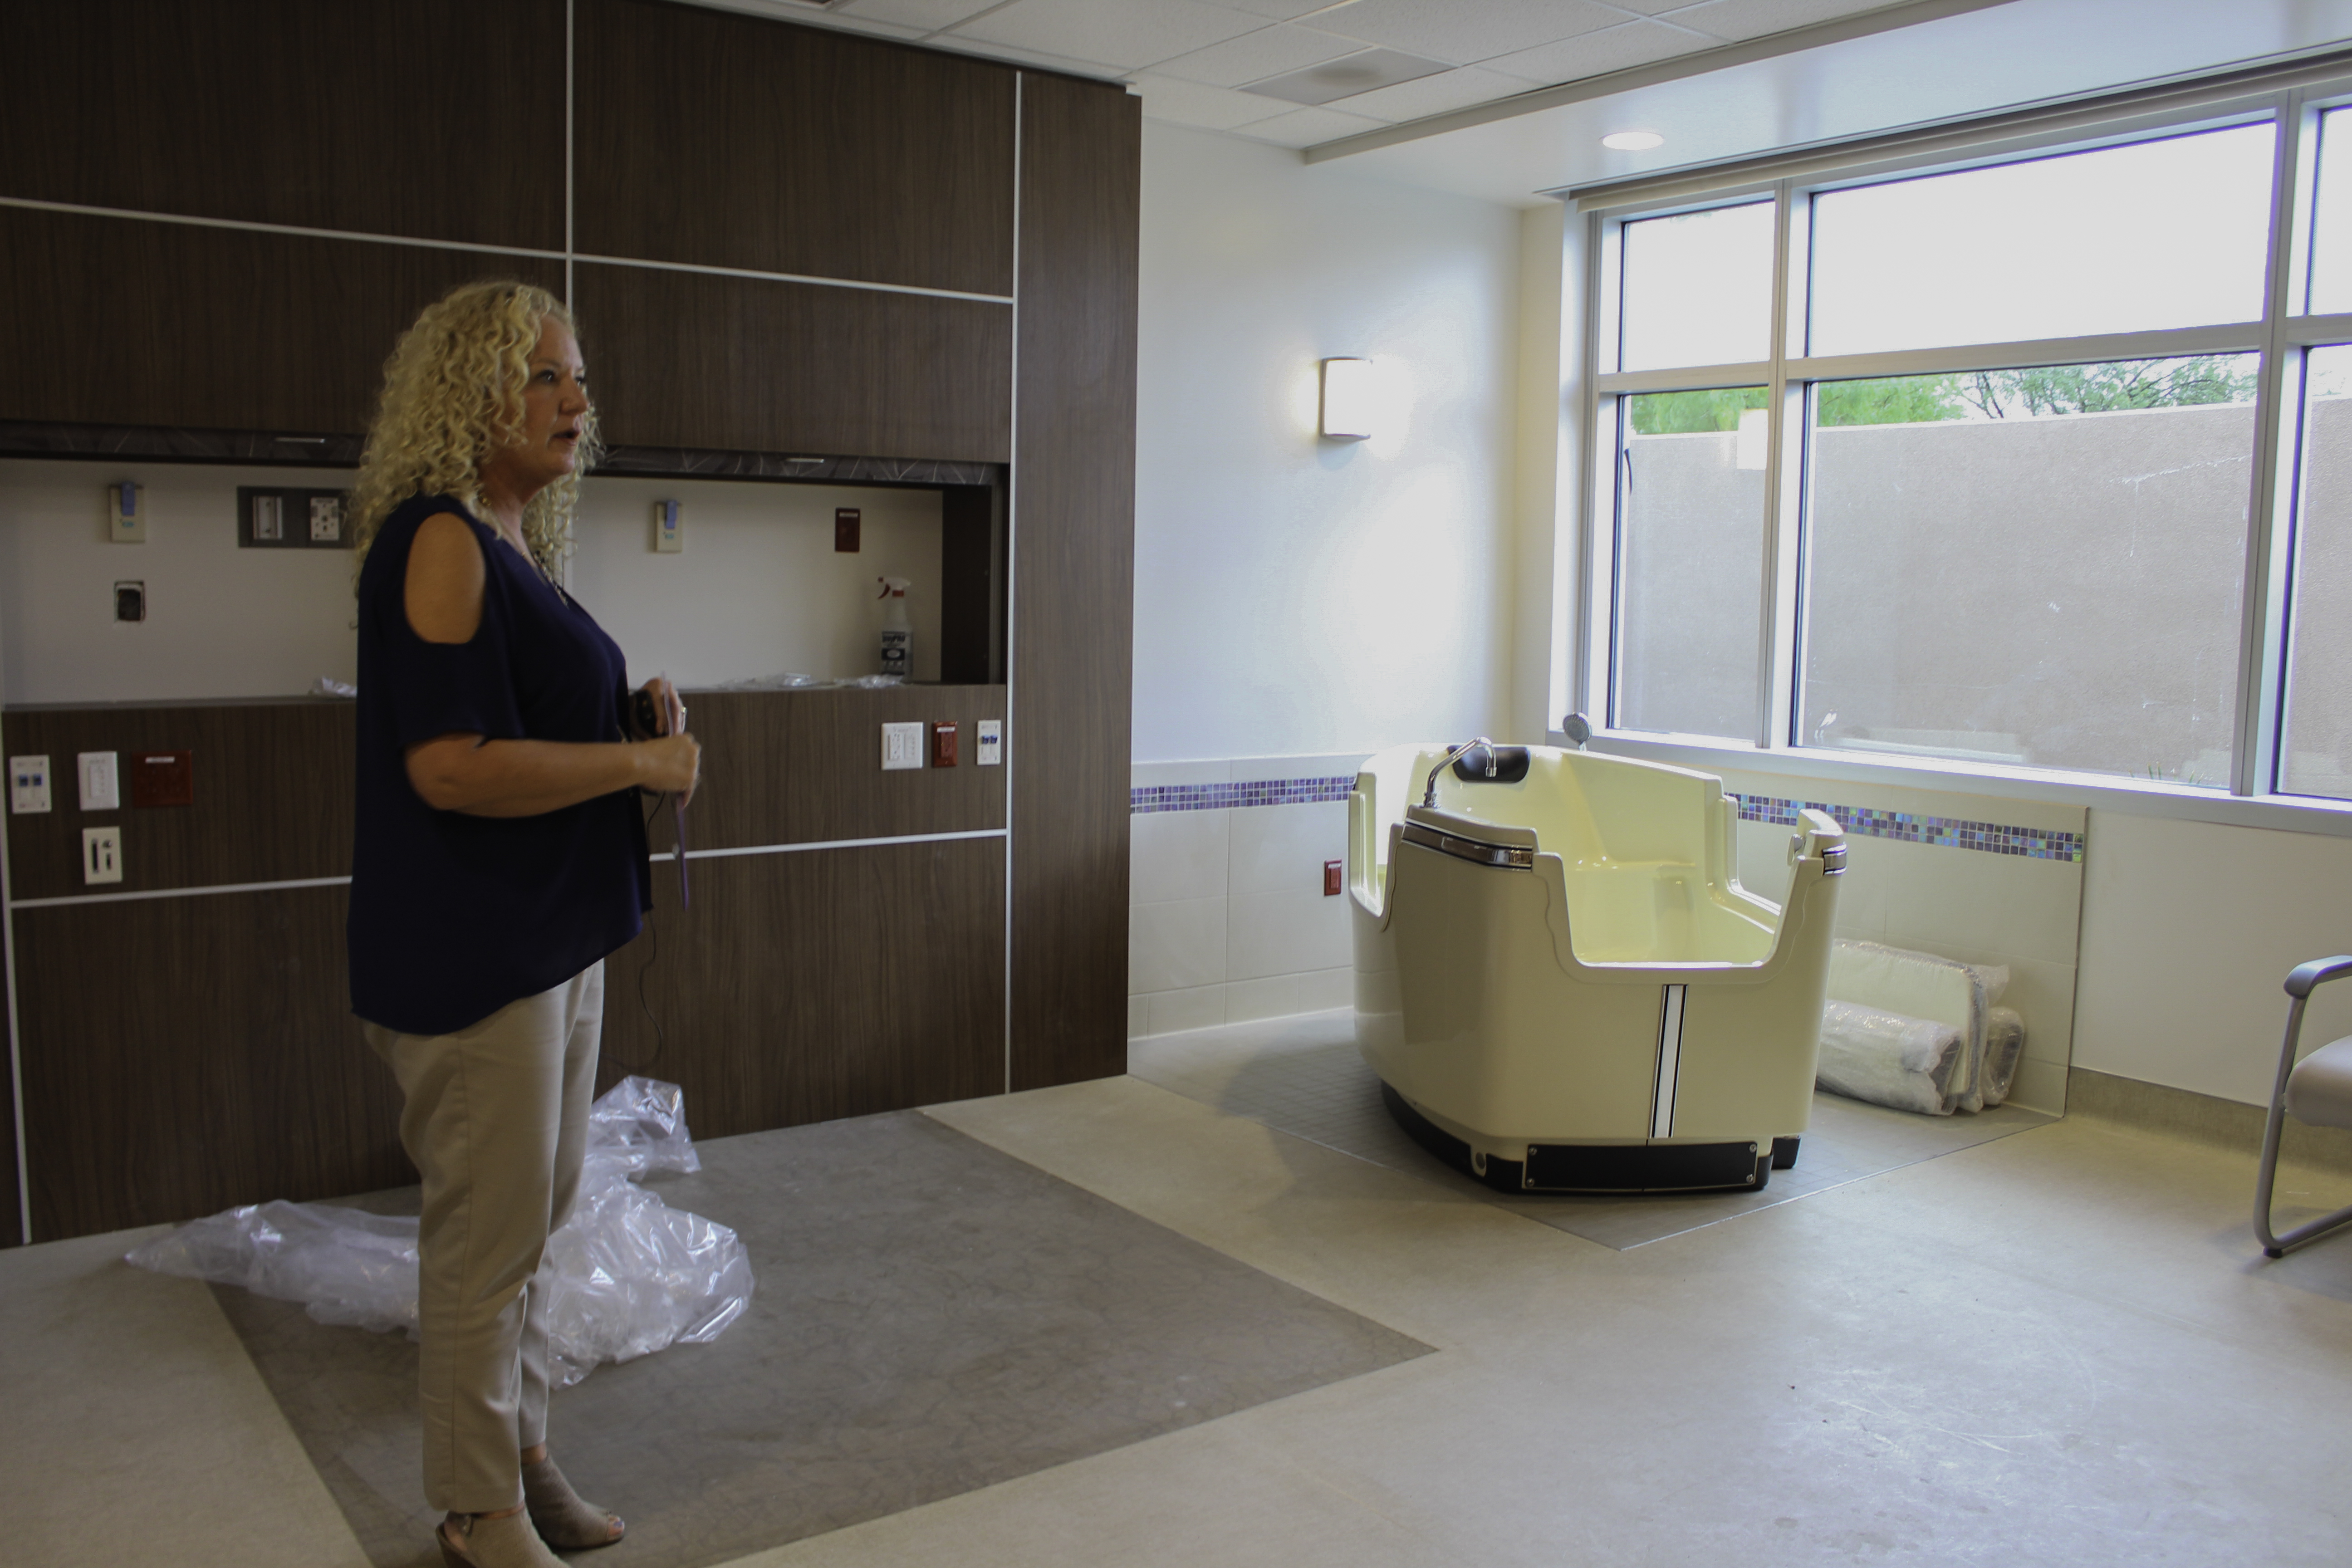 st george news tours drmc expanded facilities in advance of